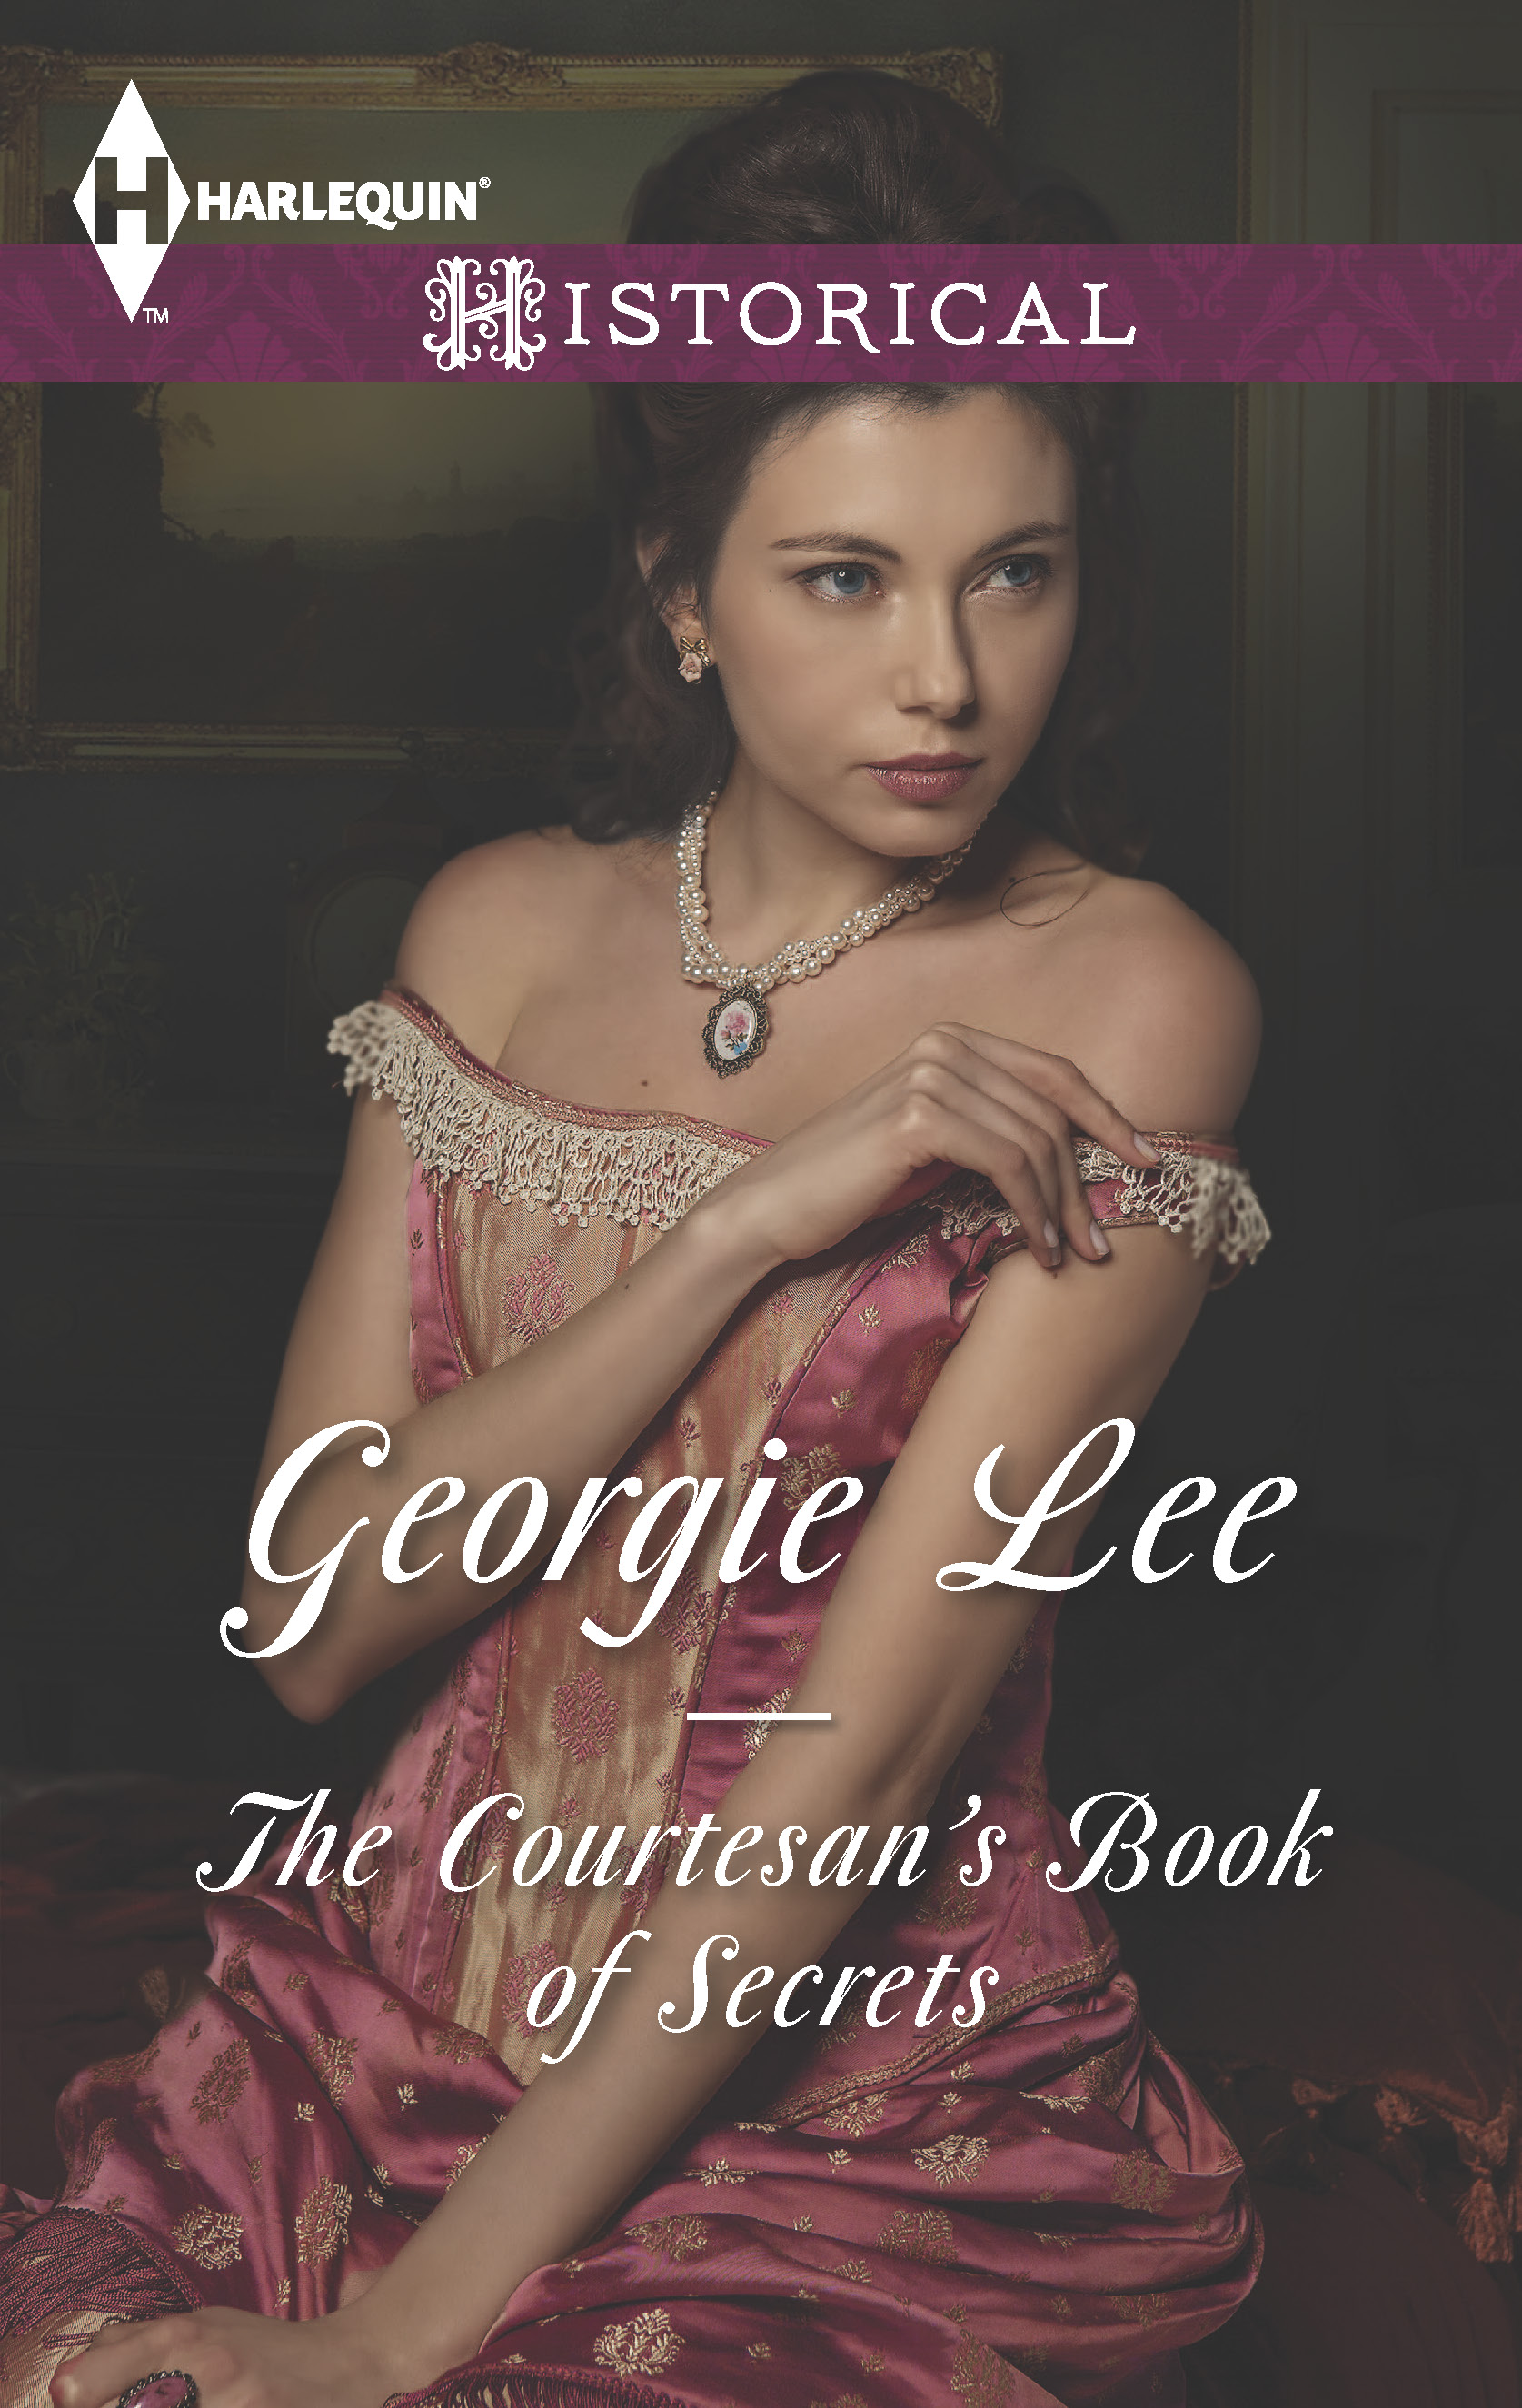 The Courtesan'd Book of Secrets, Georgie Lee, Harlequin, Historical Romance